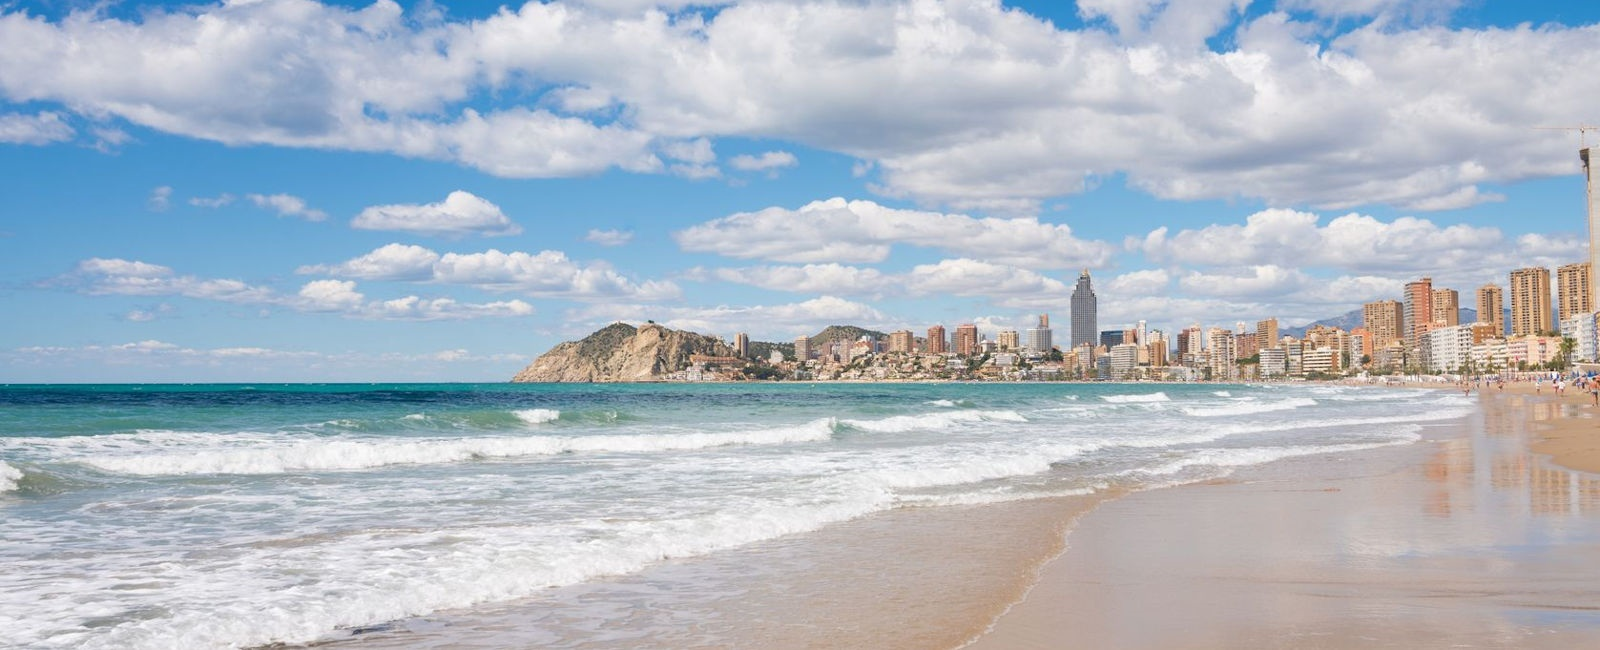 Luxury Benidorm Holidays